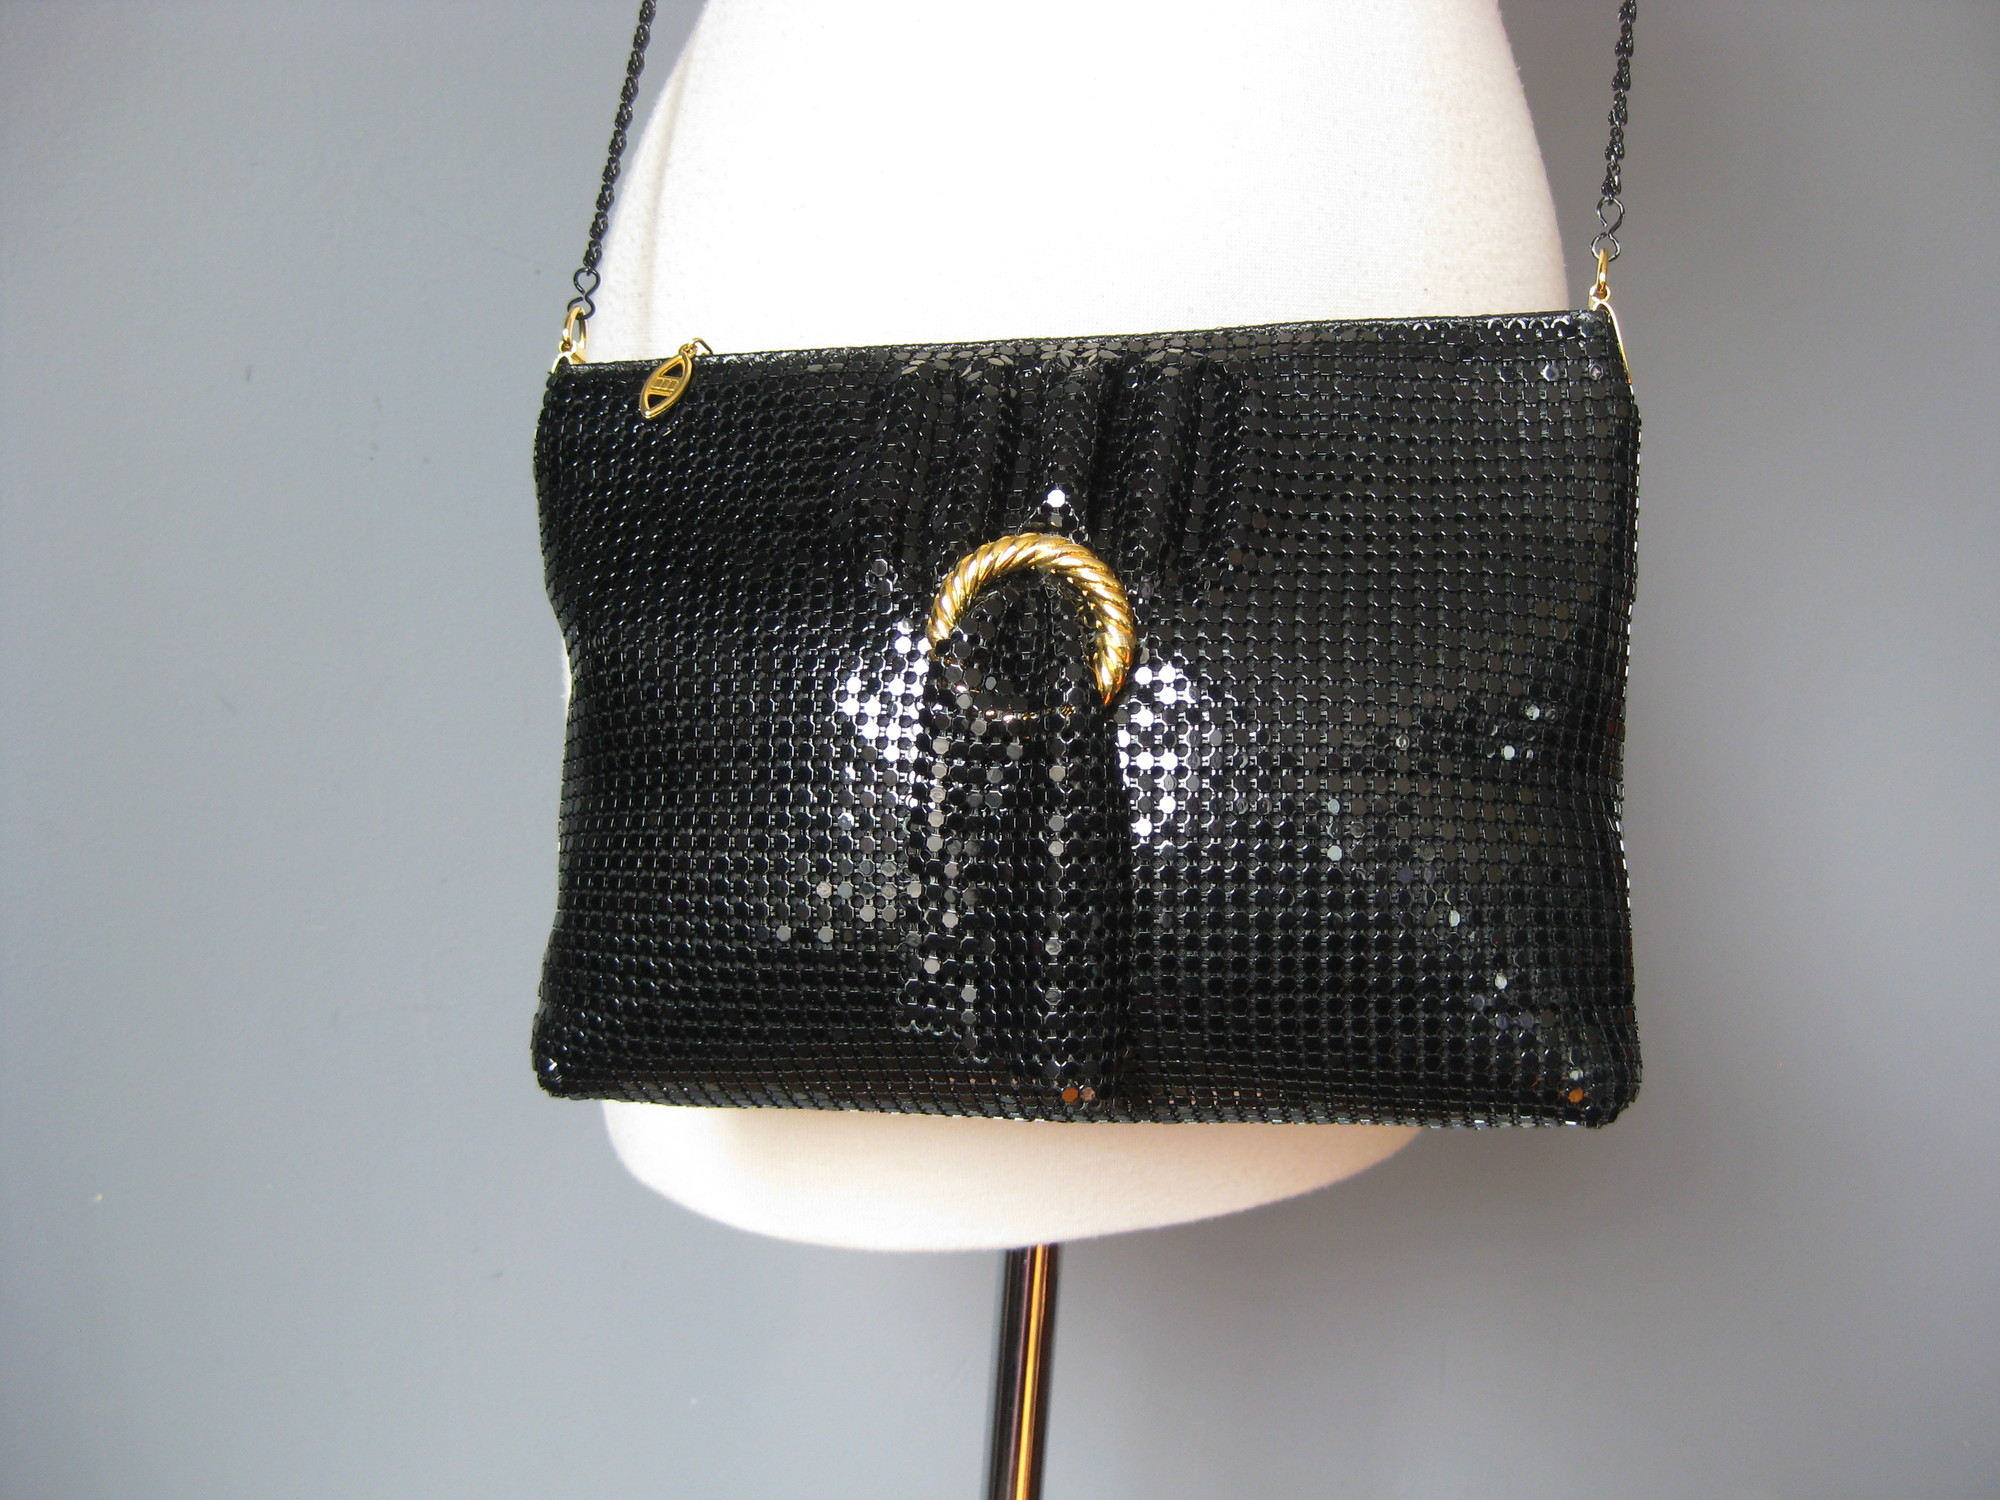 Cool black metal mesh evening bag with a thin black chain strap.<br /> Top Zipper<br /> Just in case the shiny mesh doesn't catch enough light, there is a free swinging swag of mesh at the front poking through a gold ring.<br /> Slim but flexible, will hold everything you need<br /> No tags<br /> I slip pocket inside<br /> Tiny bit of wear on the top edge<br /> 10.5in x 7in x 2in<br /> chain drop: 22in<br /> <br /> Thanks for looking!<br /> #15167